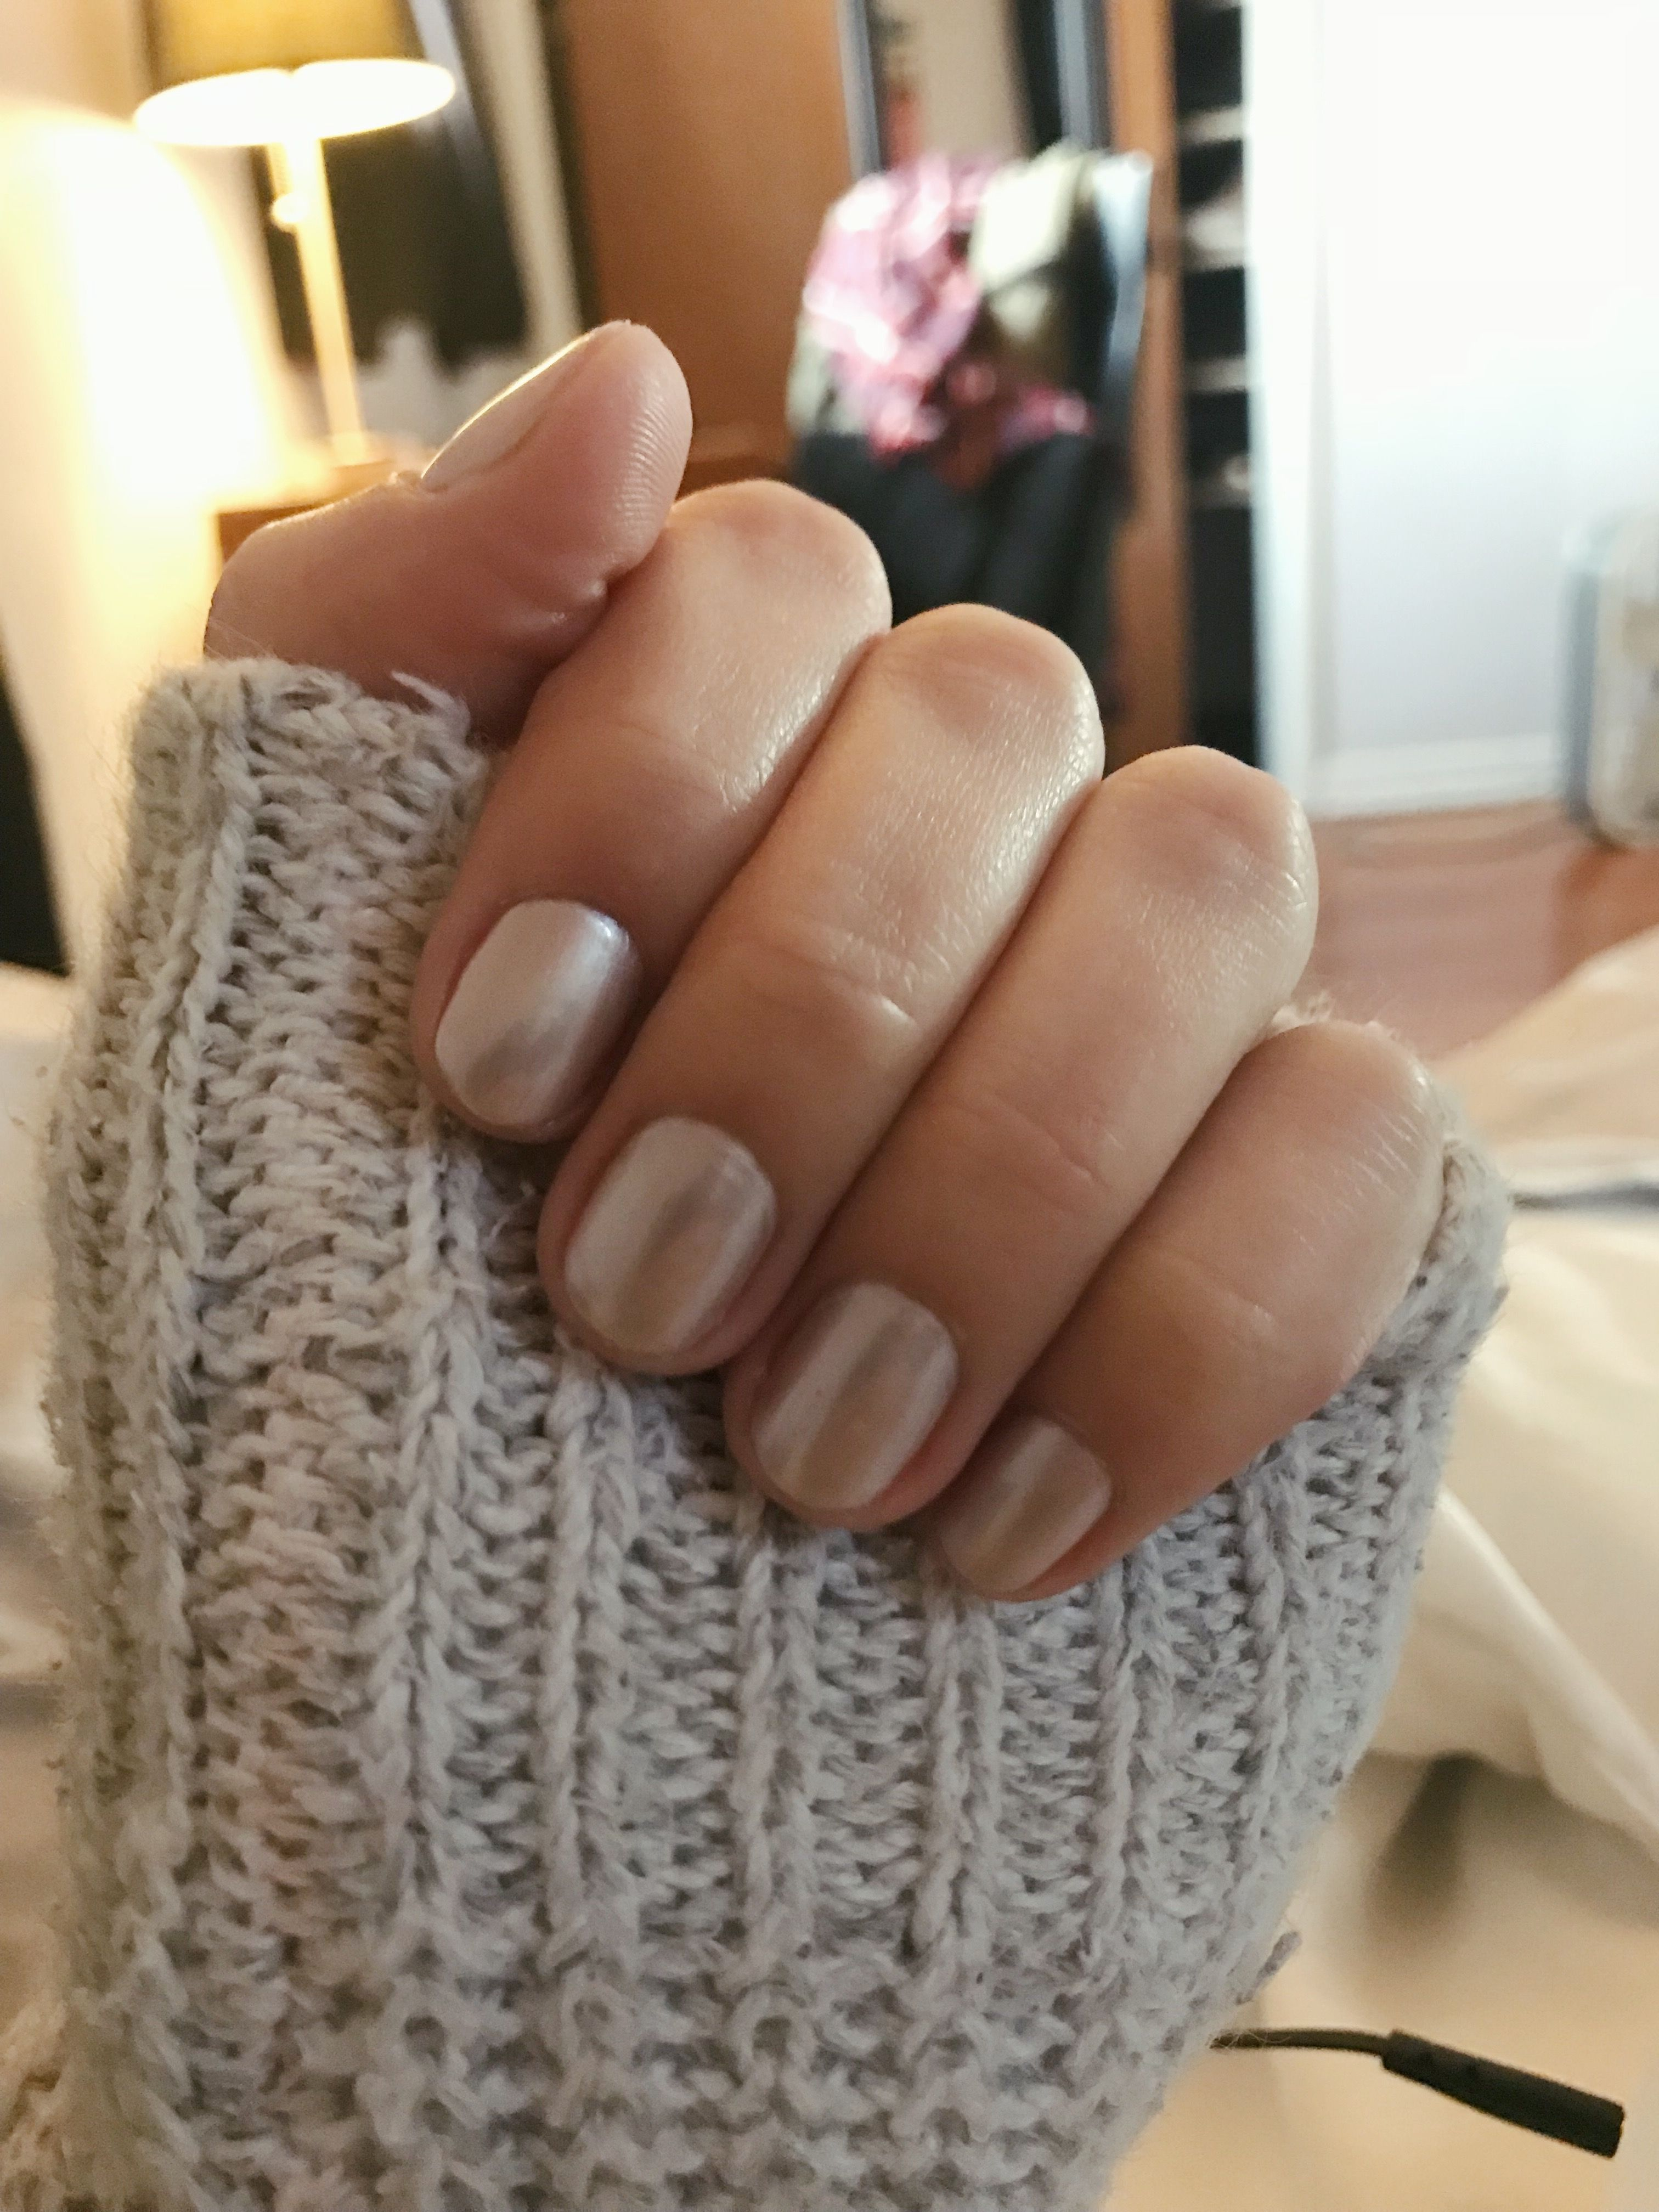 Super Short Nails While Recovering From Sns Damage Sns Nails How To Do Nails Short Nails